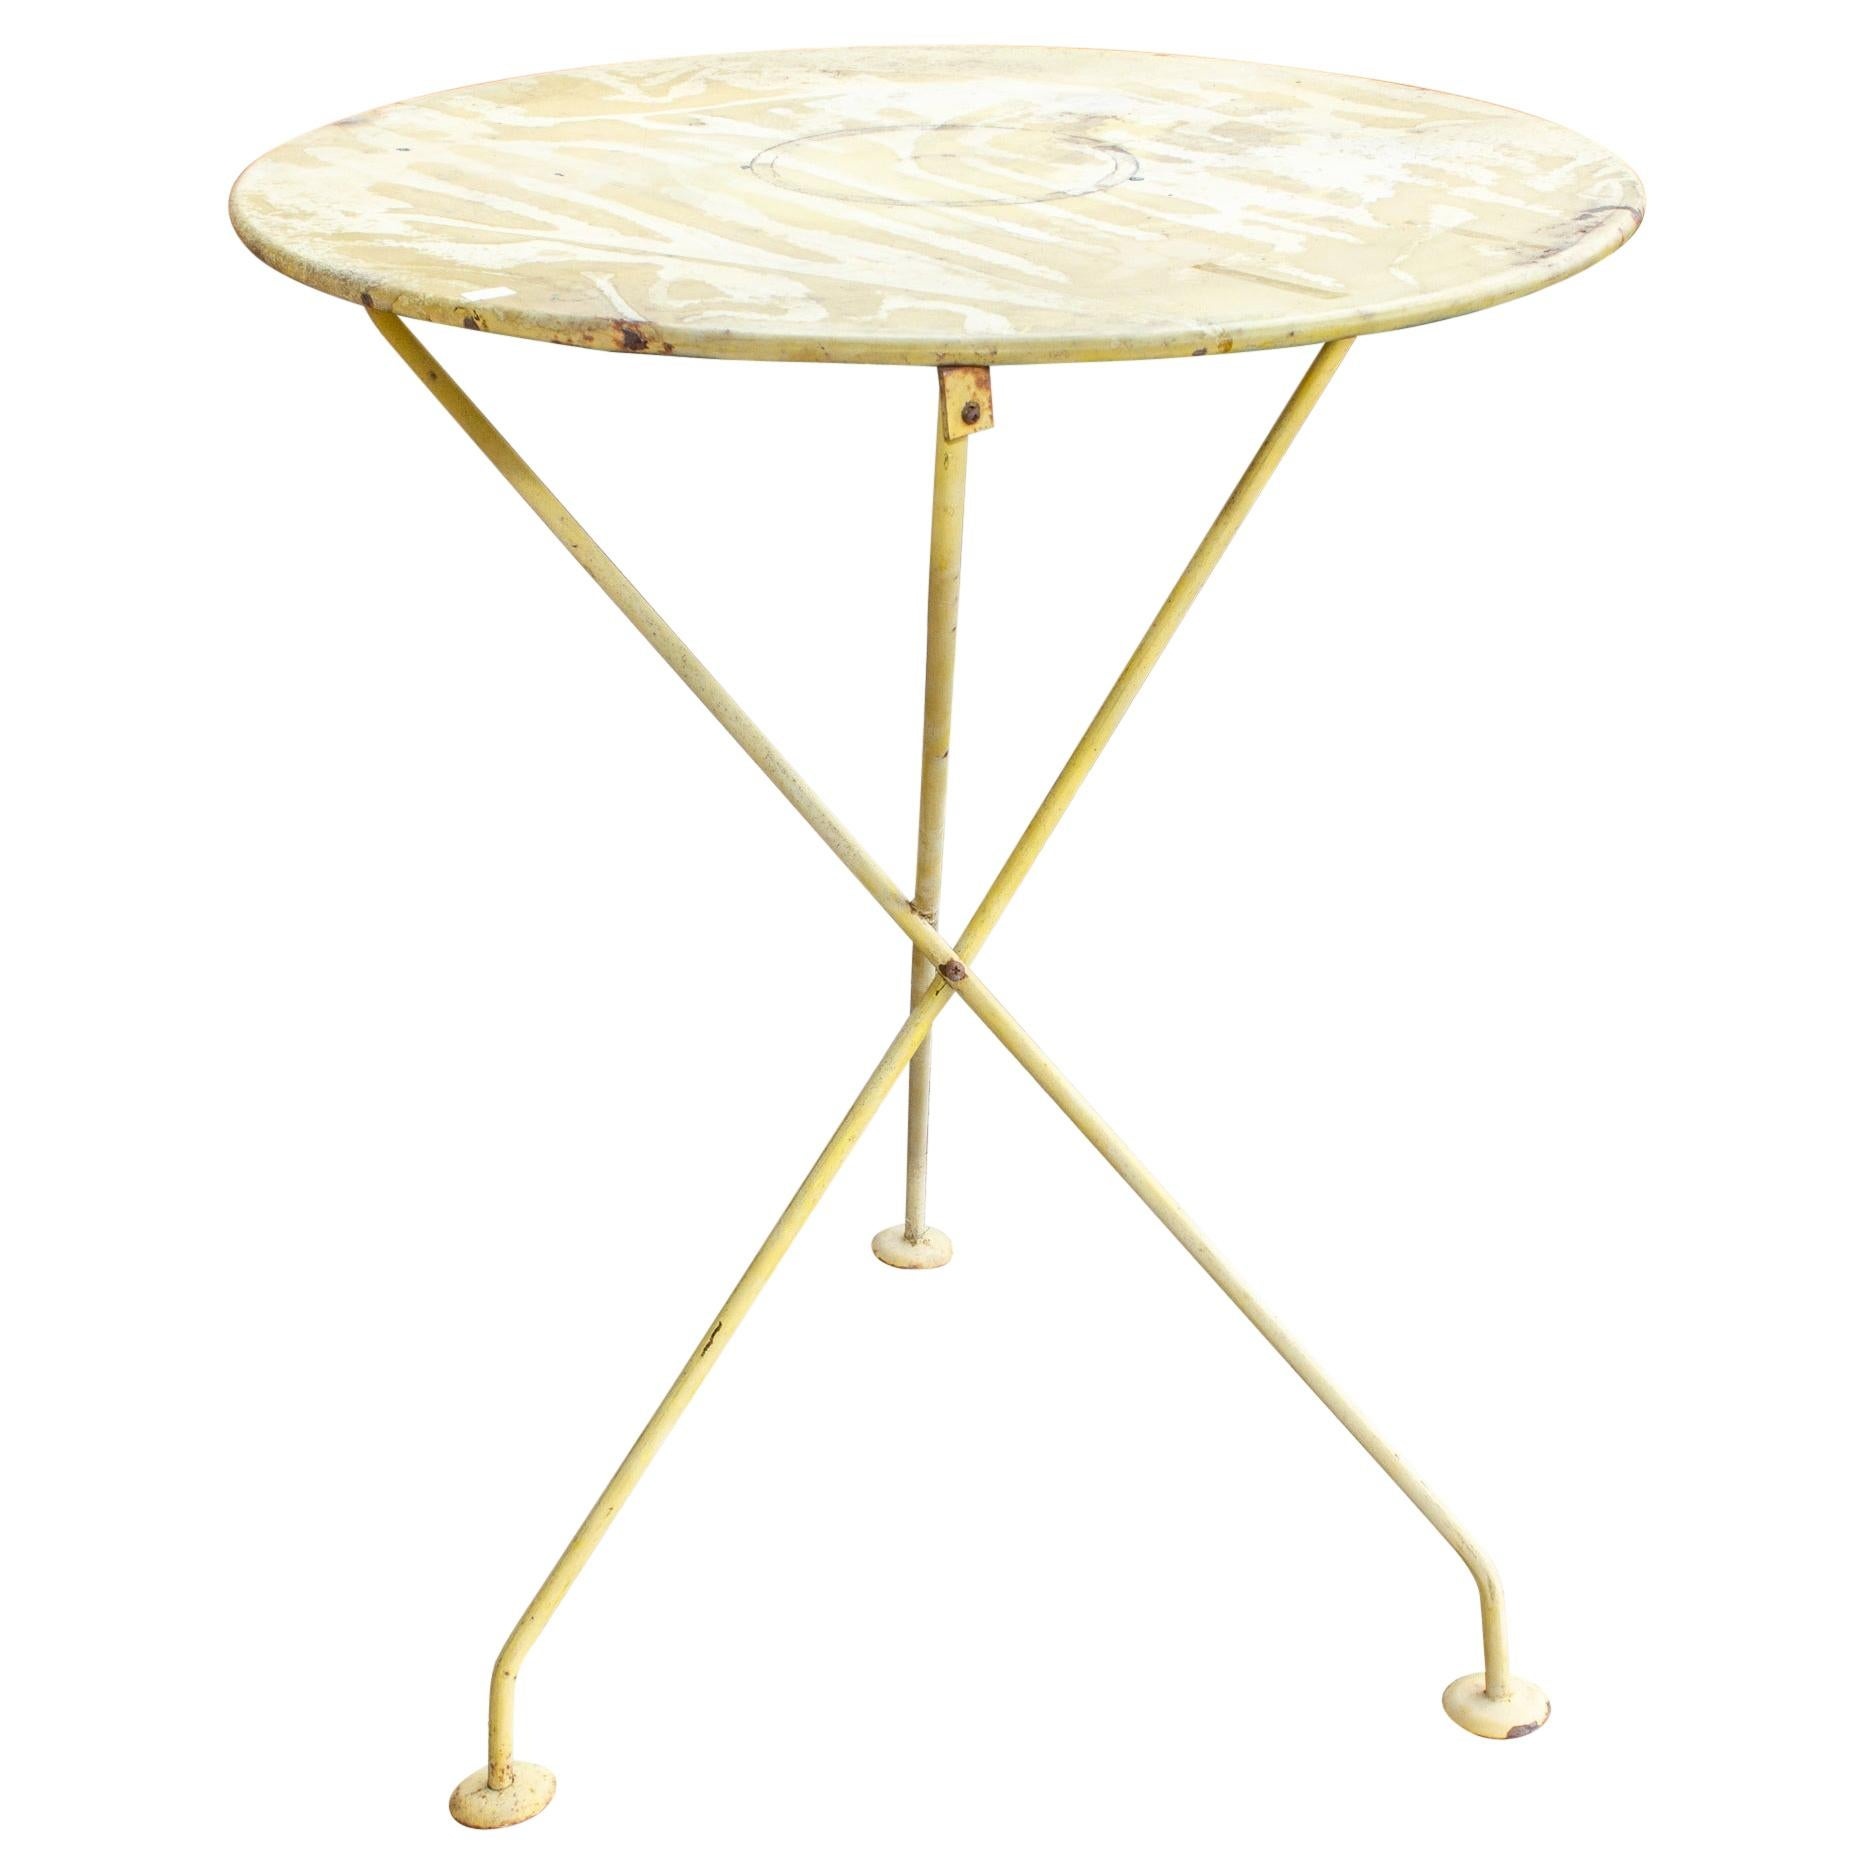 1920s French Painted Metal Garden & Bistro Table